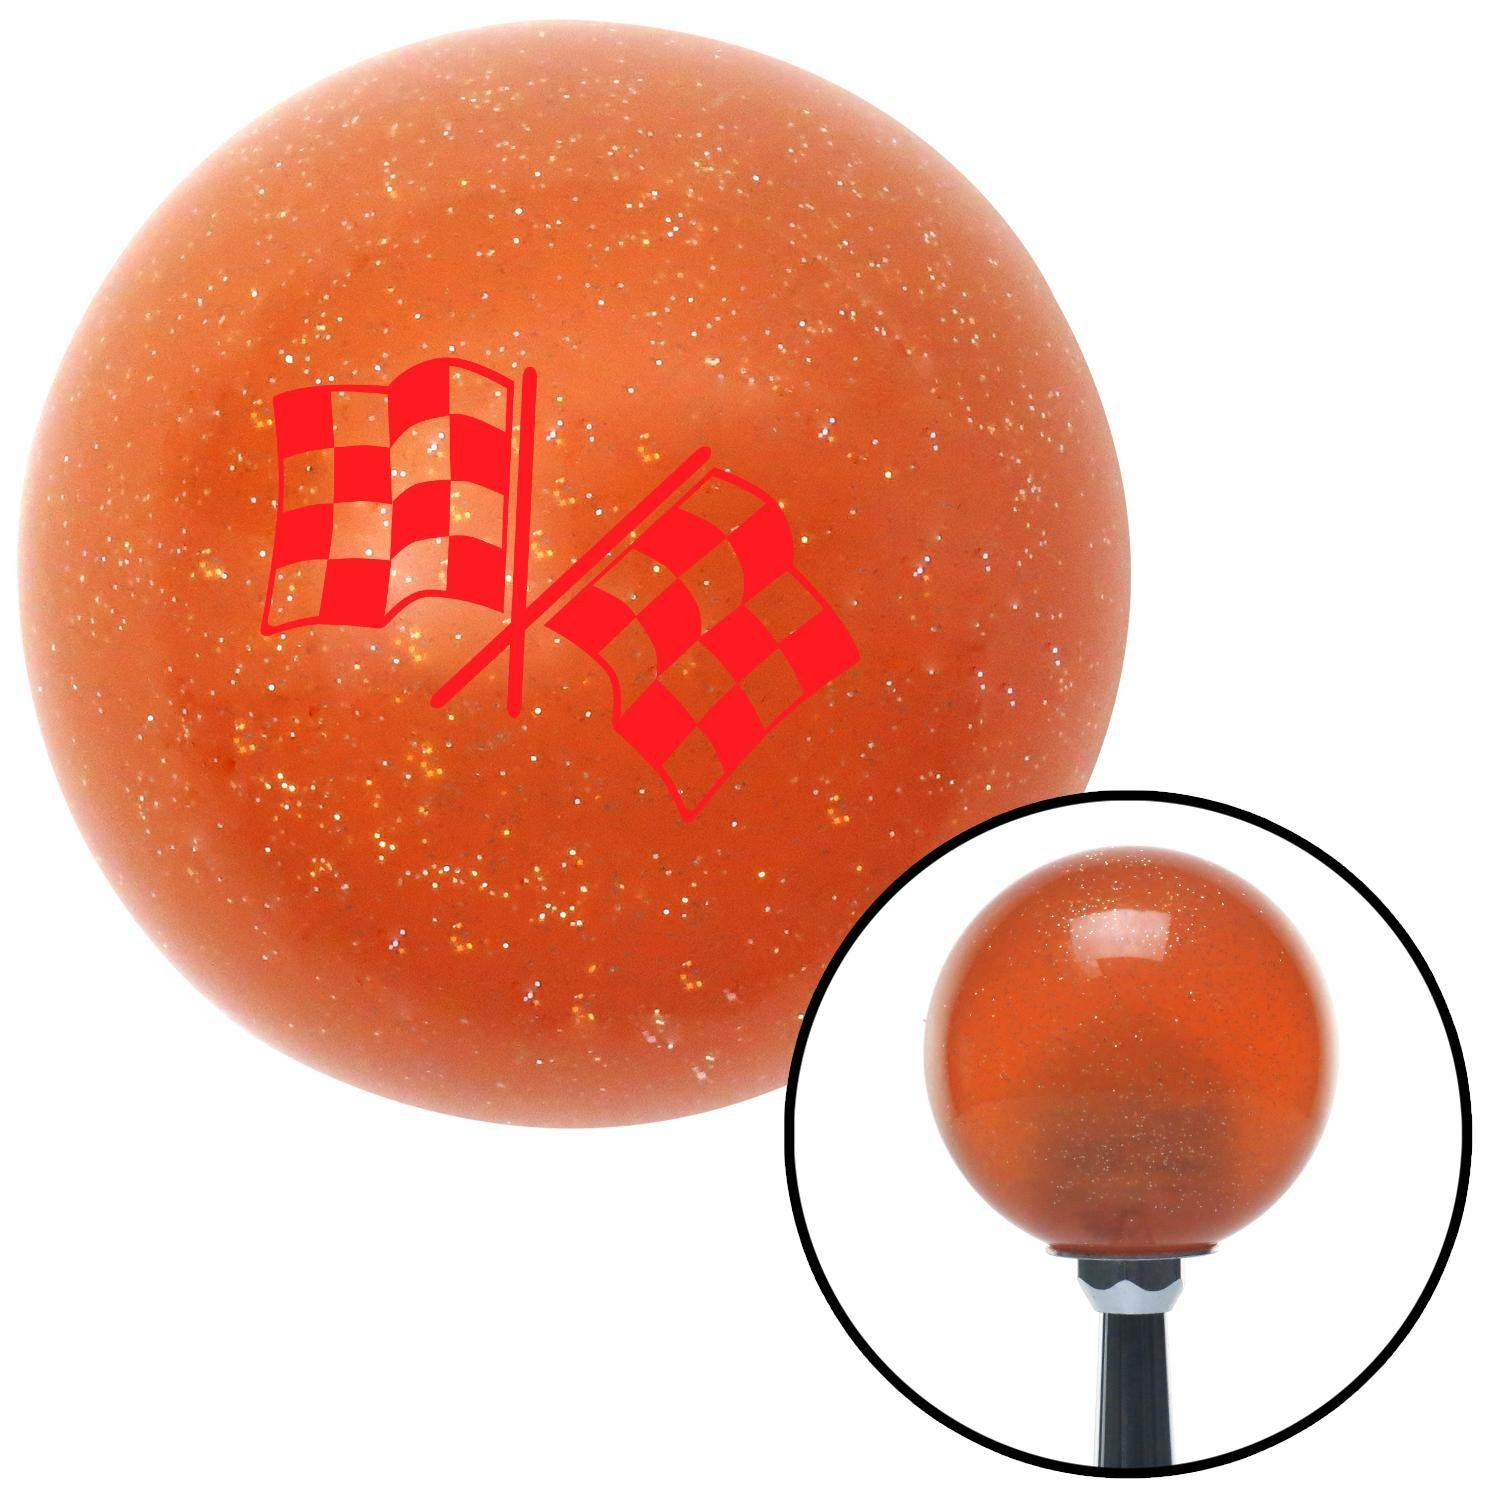 American Shifter 39111 Orange Metal Flake Shift Knob with 16mm x 1.5 Insert Red Checkered Flags